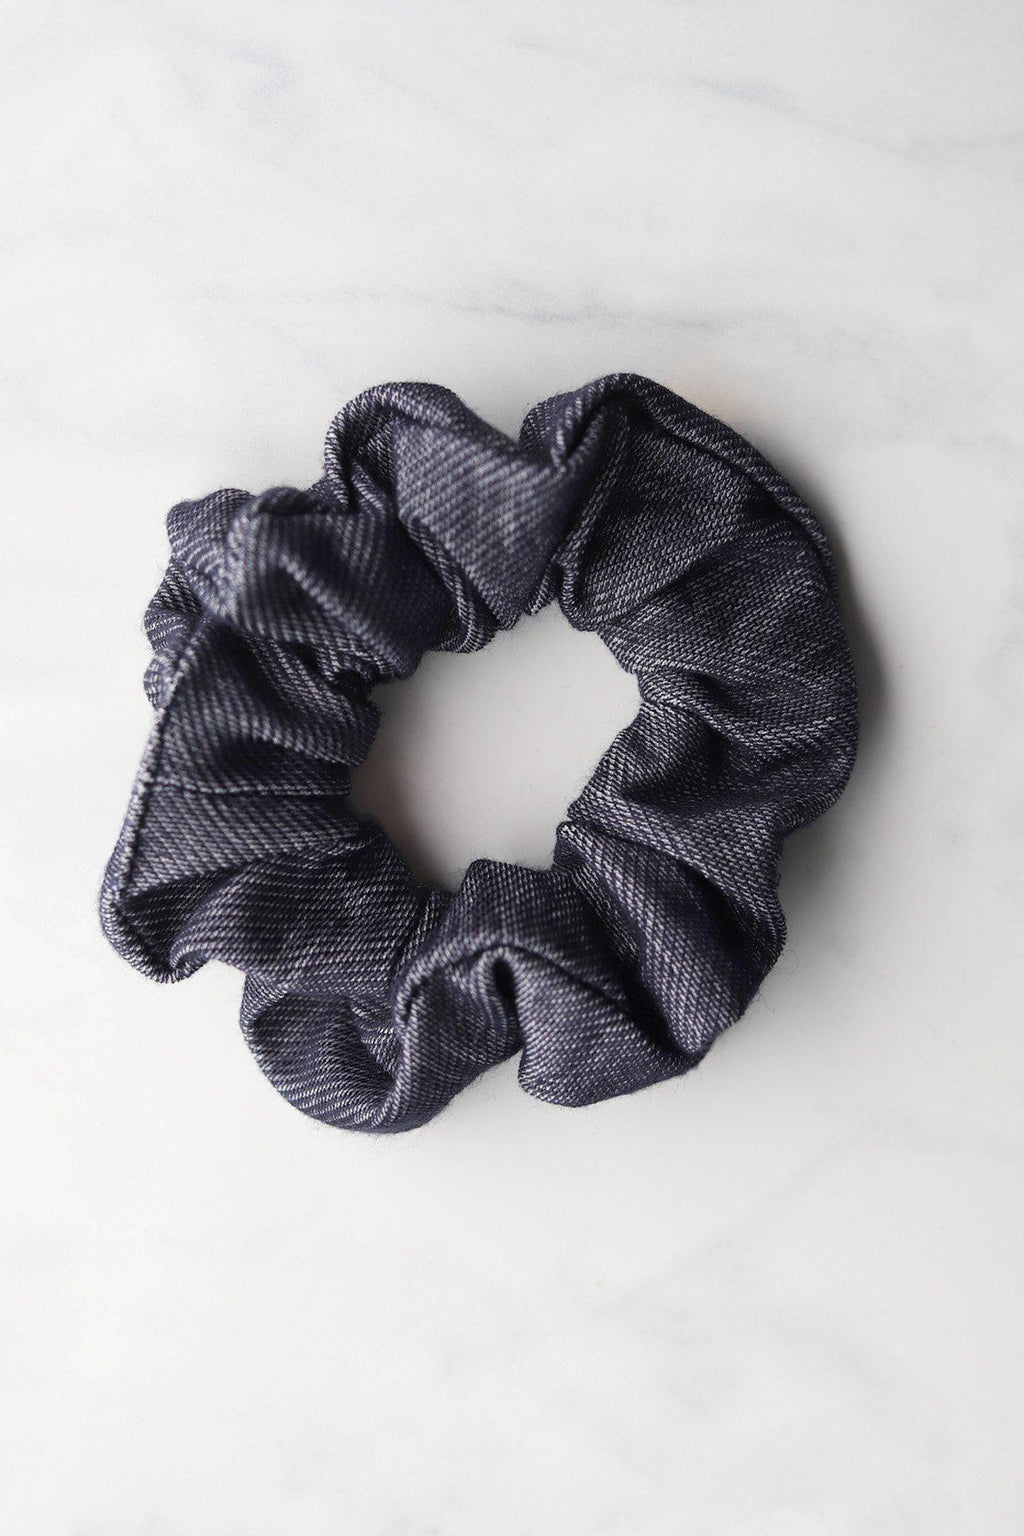 Chambray Scrunchie / Dark Chambray - Gallery 512 Boutique